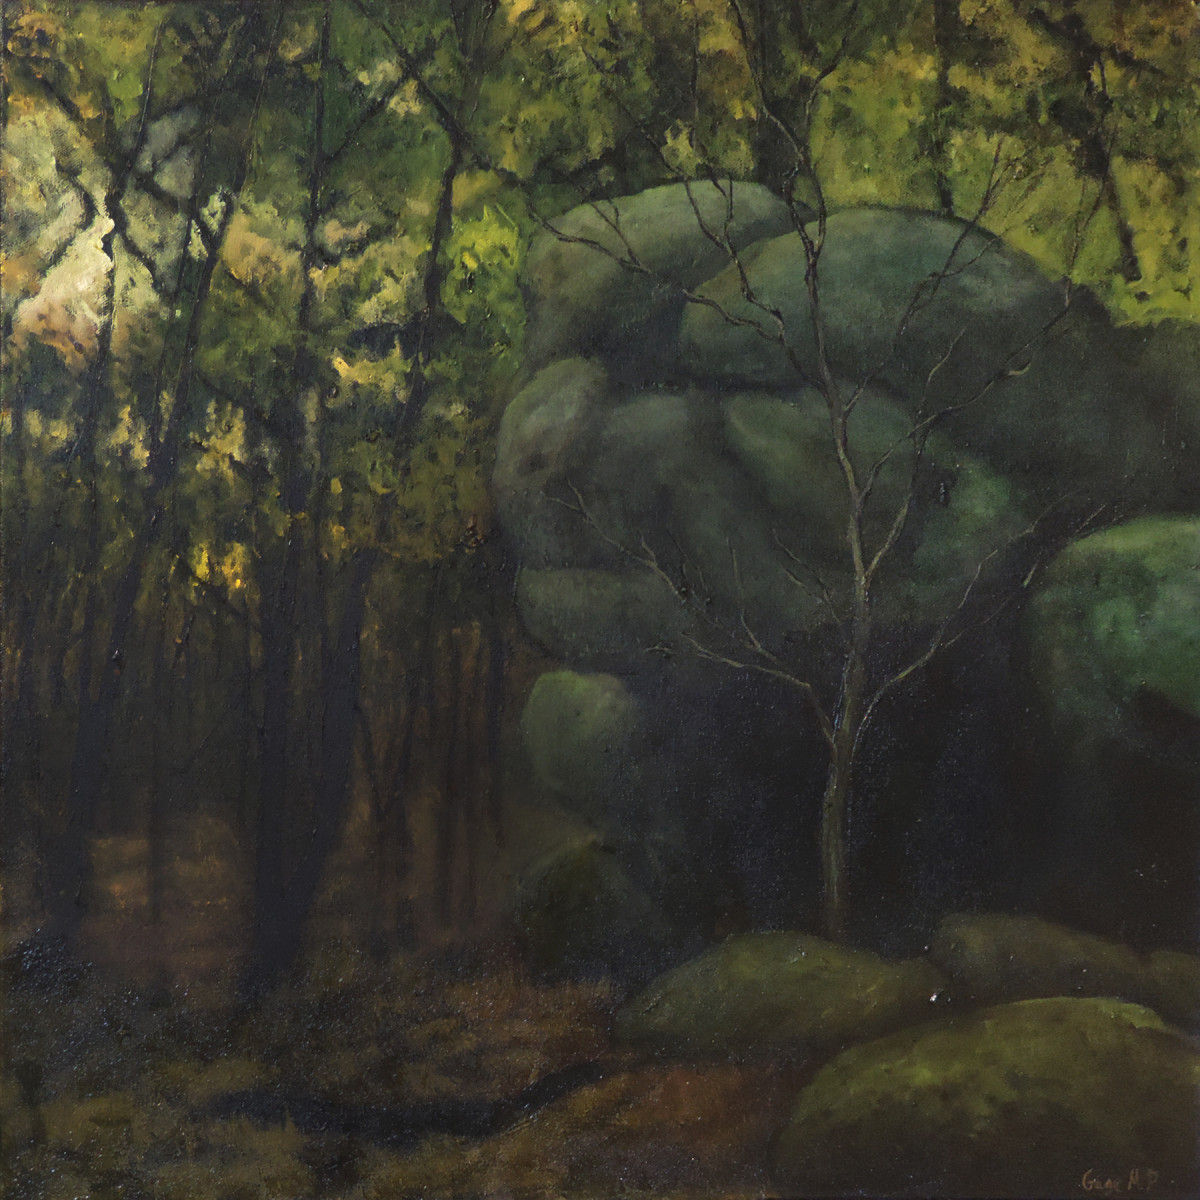 Lincoln Woods 14 - August - Oil on Canvas - 24 x 24